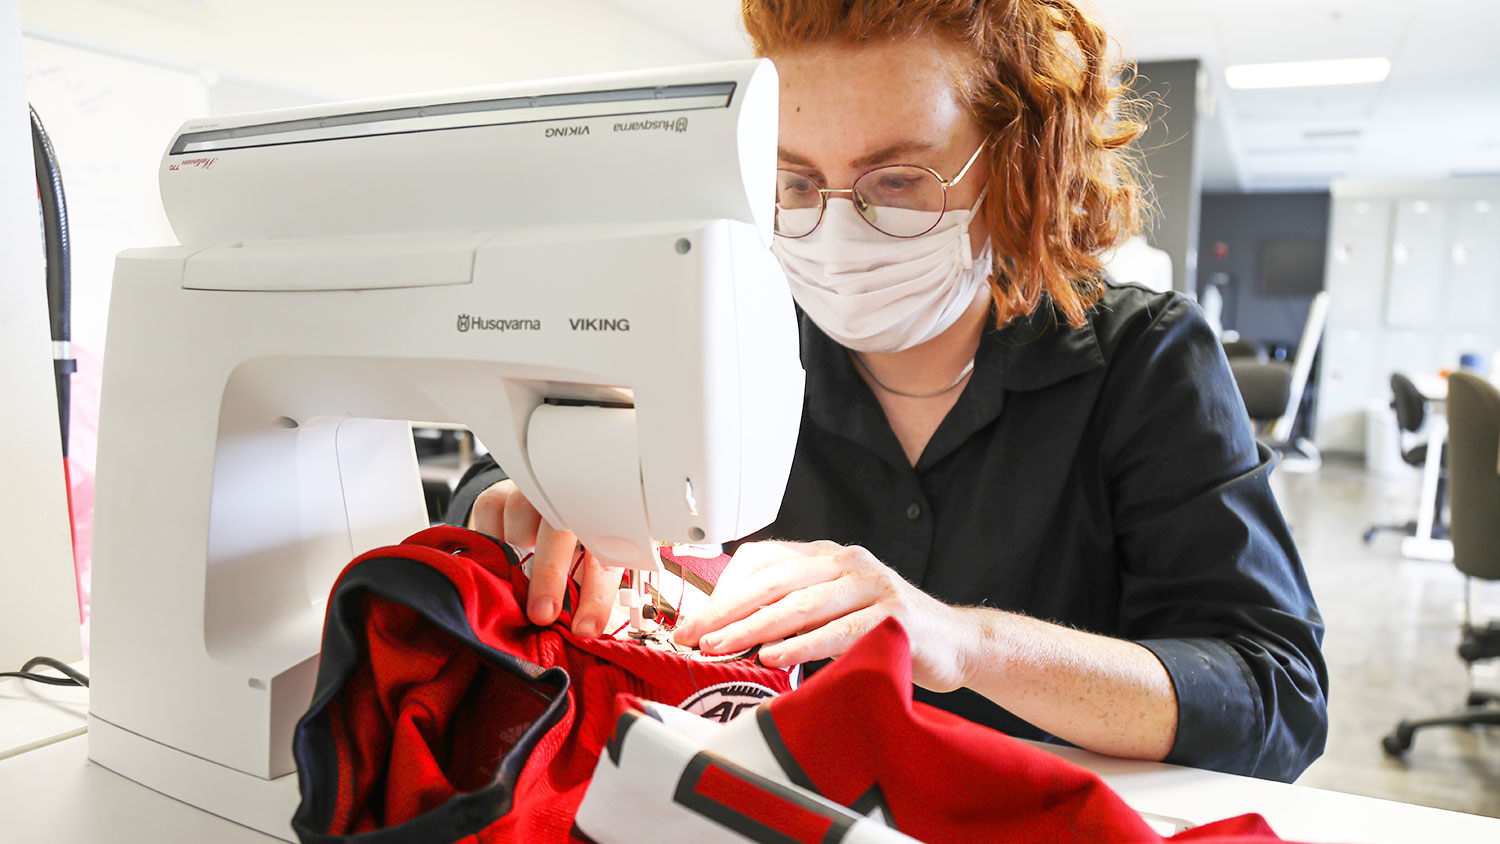 Bailey Knight sews a patch on a football uniform